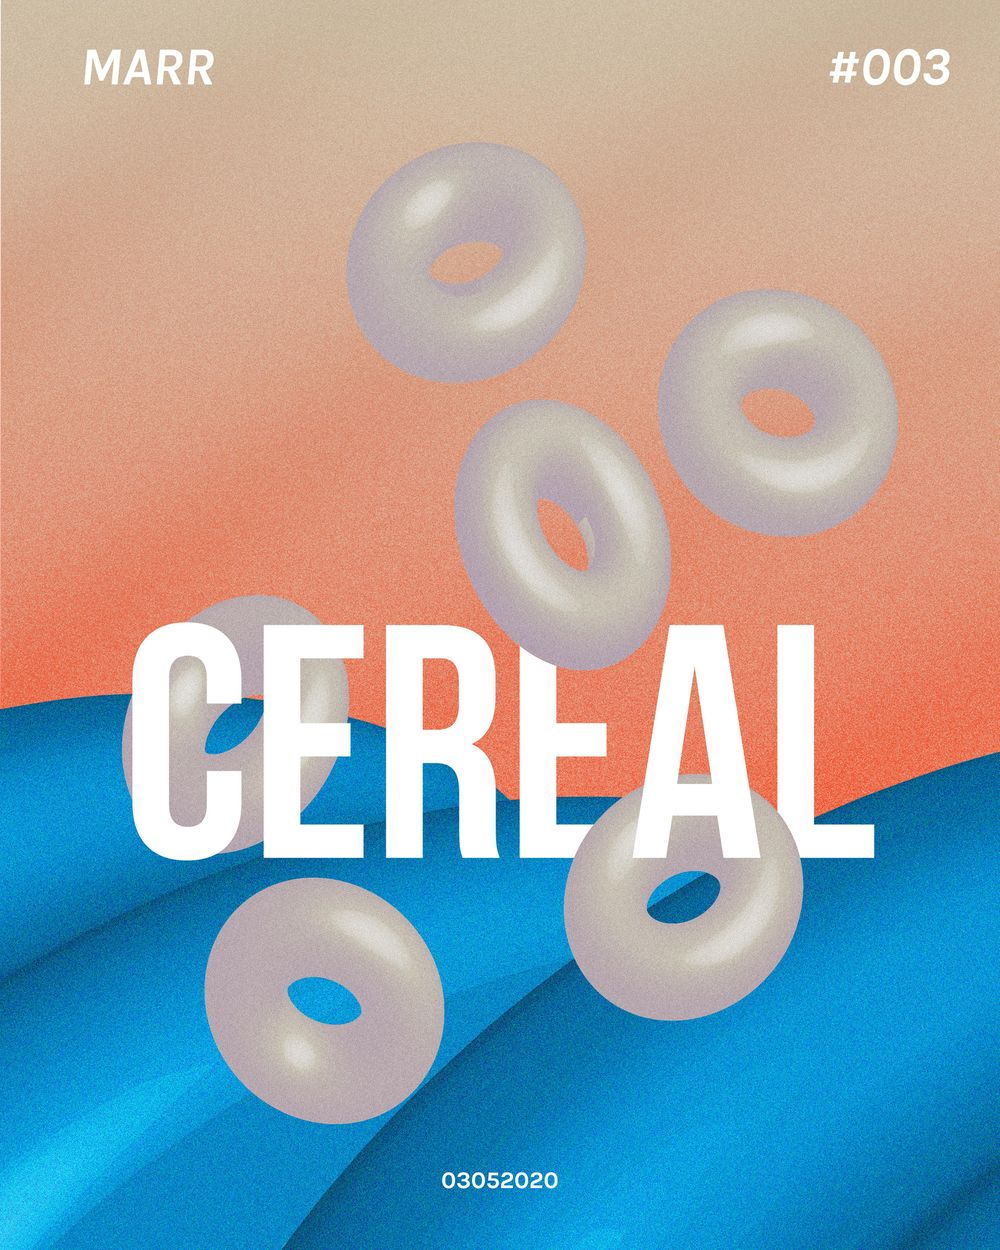 Cereal - image 1 - student project